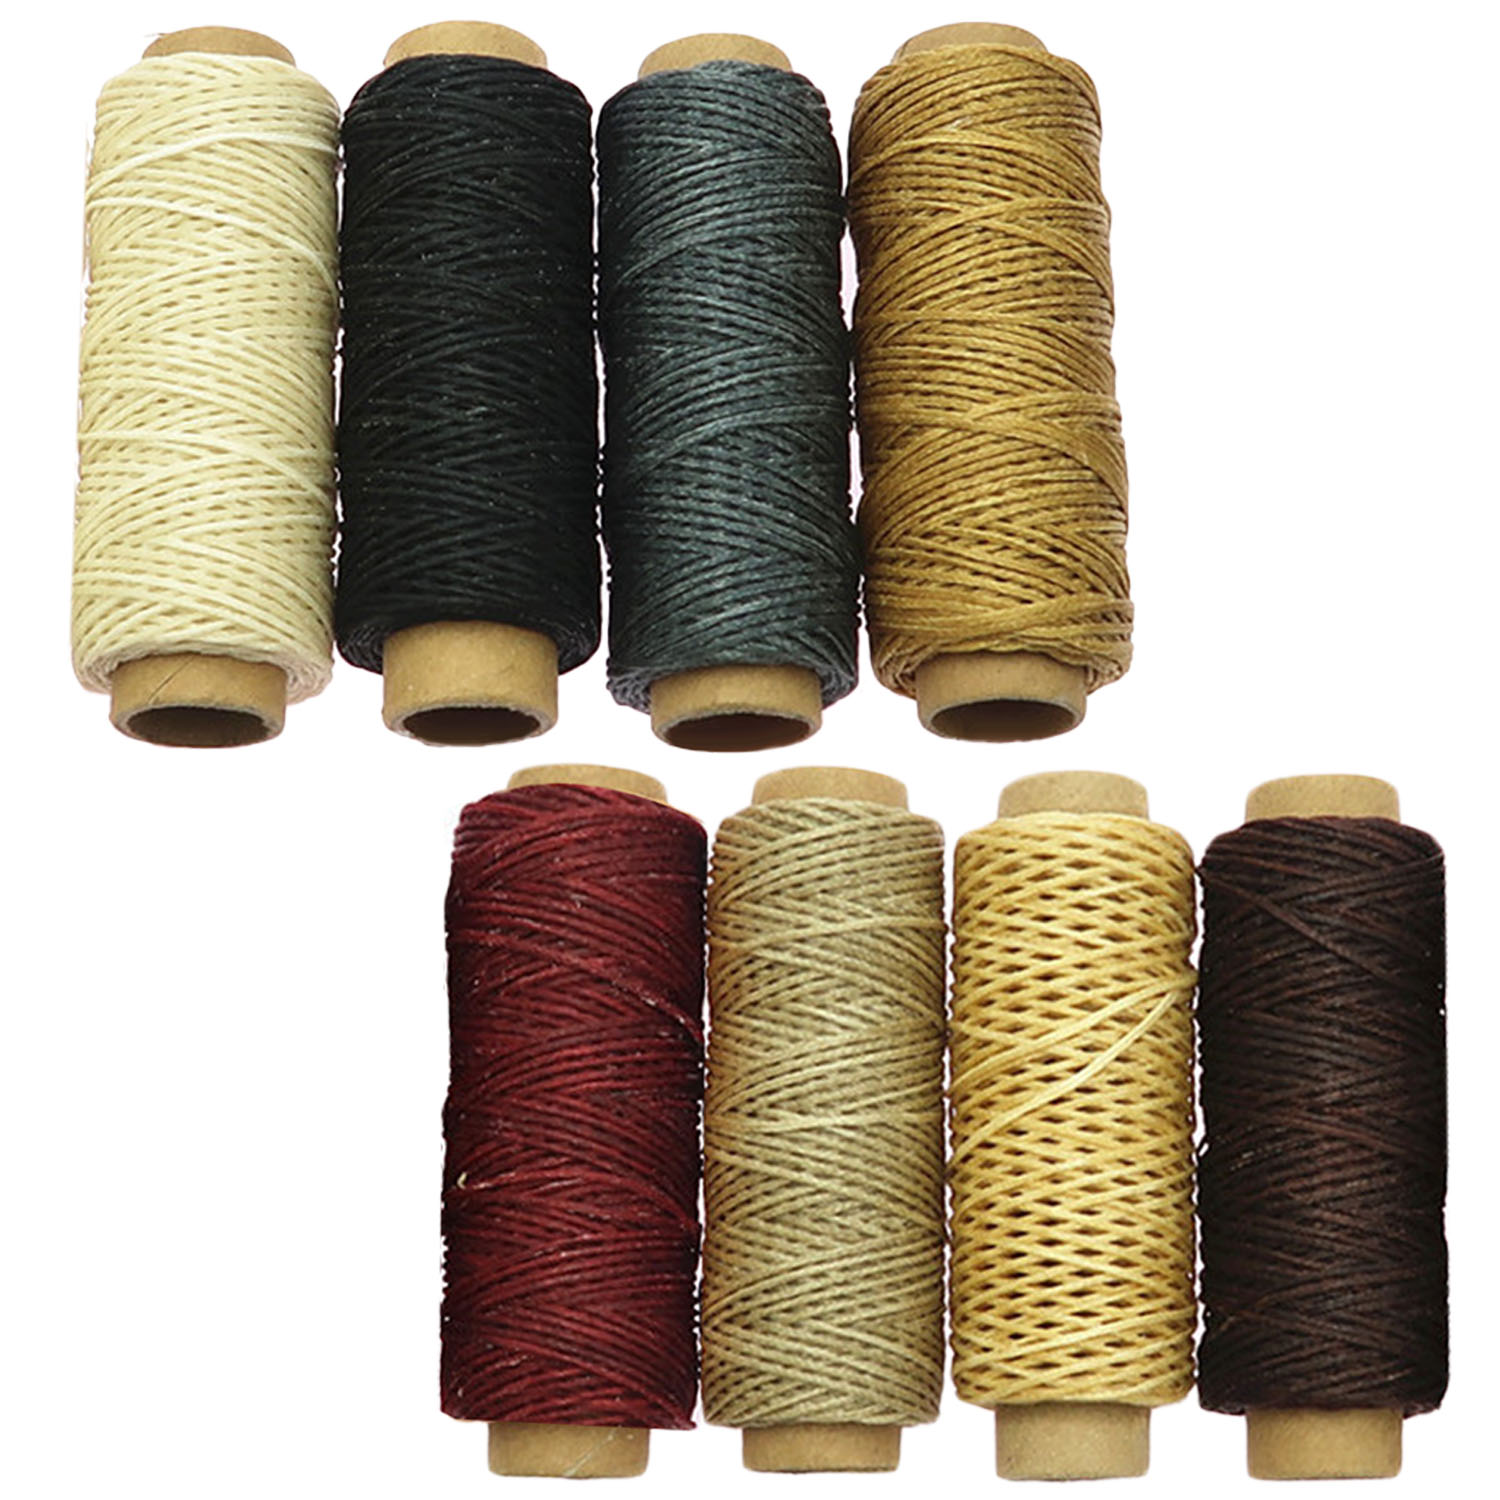 8 Roll 30m Assorted Colors 150D Waxed Thread Cord for luggage Wallet Shoes Tents Carpets Saddles Canvas Coats Leather Repair8 Roll 30m Assorted Colors 150D Waxed Thread Cord for luggage Wallet Shoes Tents Carpets Saddles Canvas Coats Leather Repair